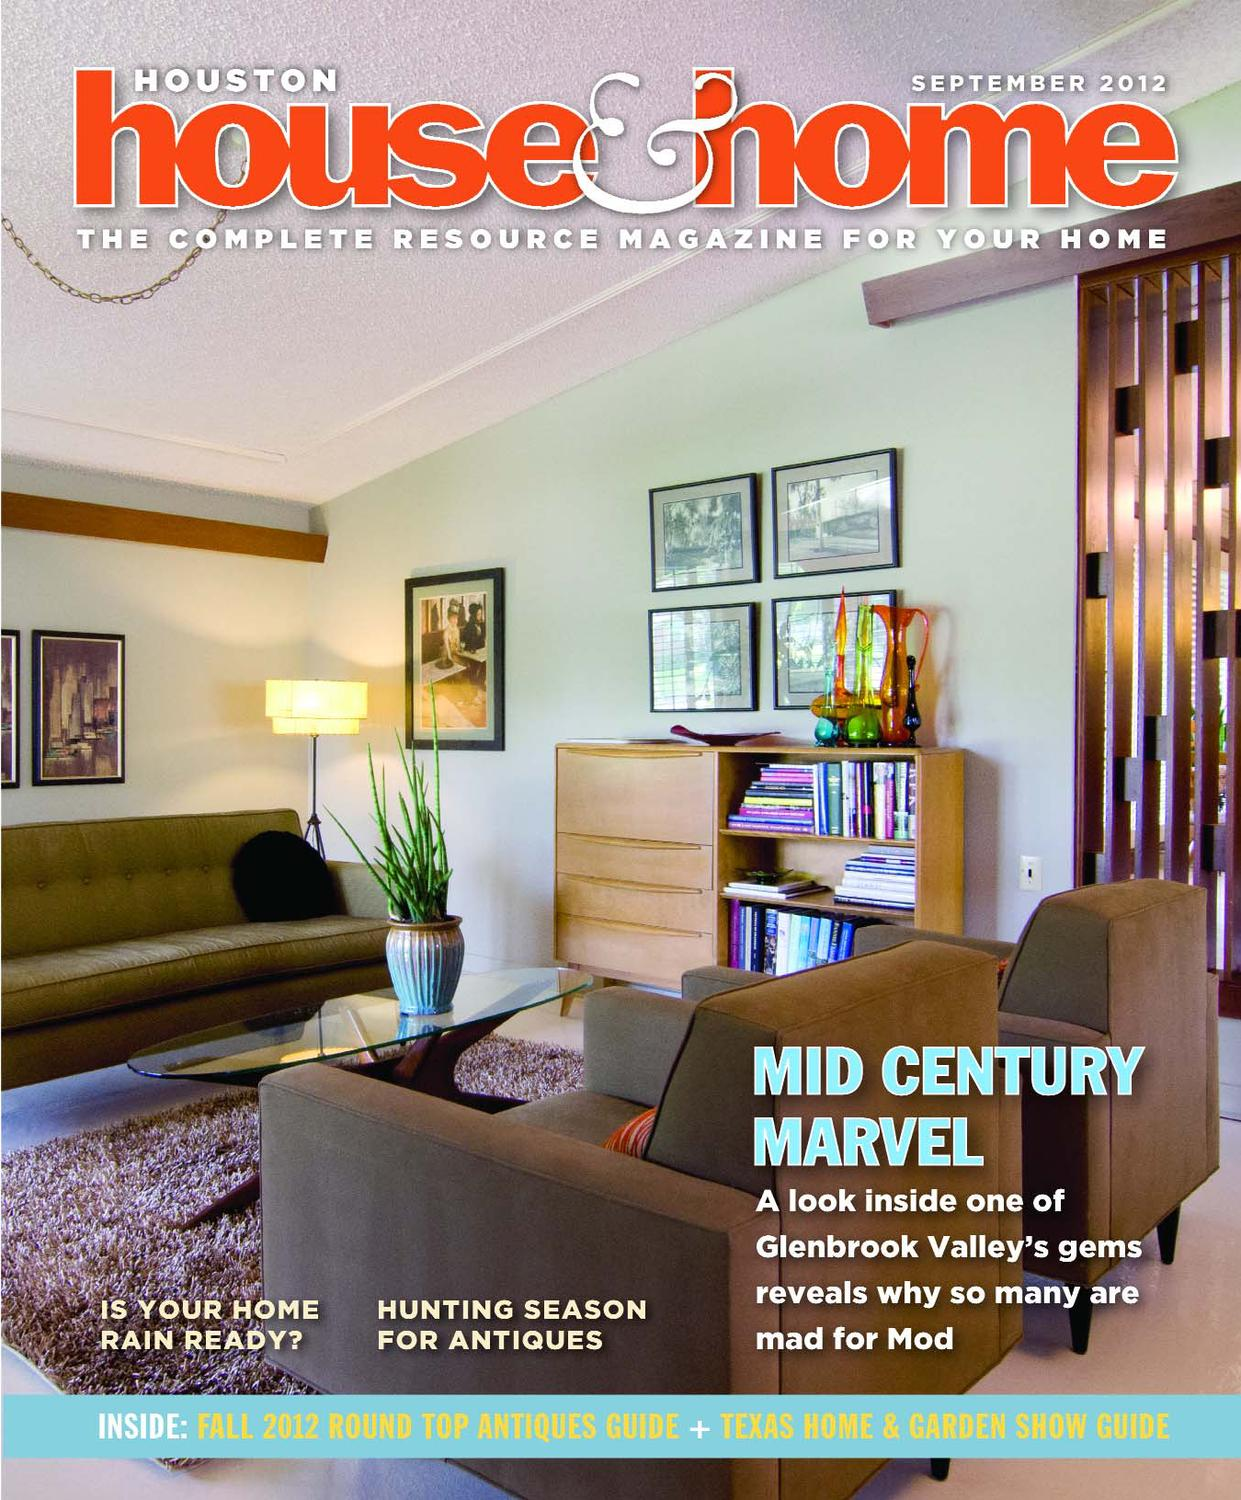 Houston House And Home September 2012 By Glenbrook Valley   Issuu